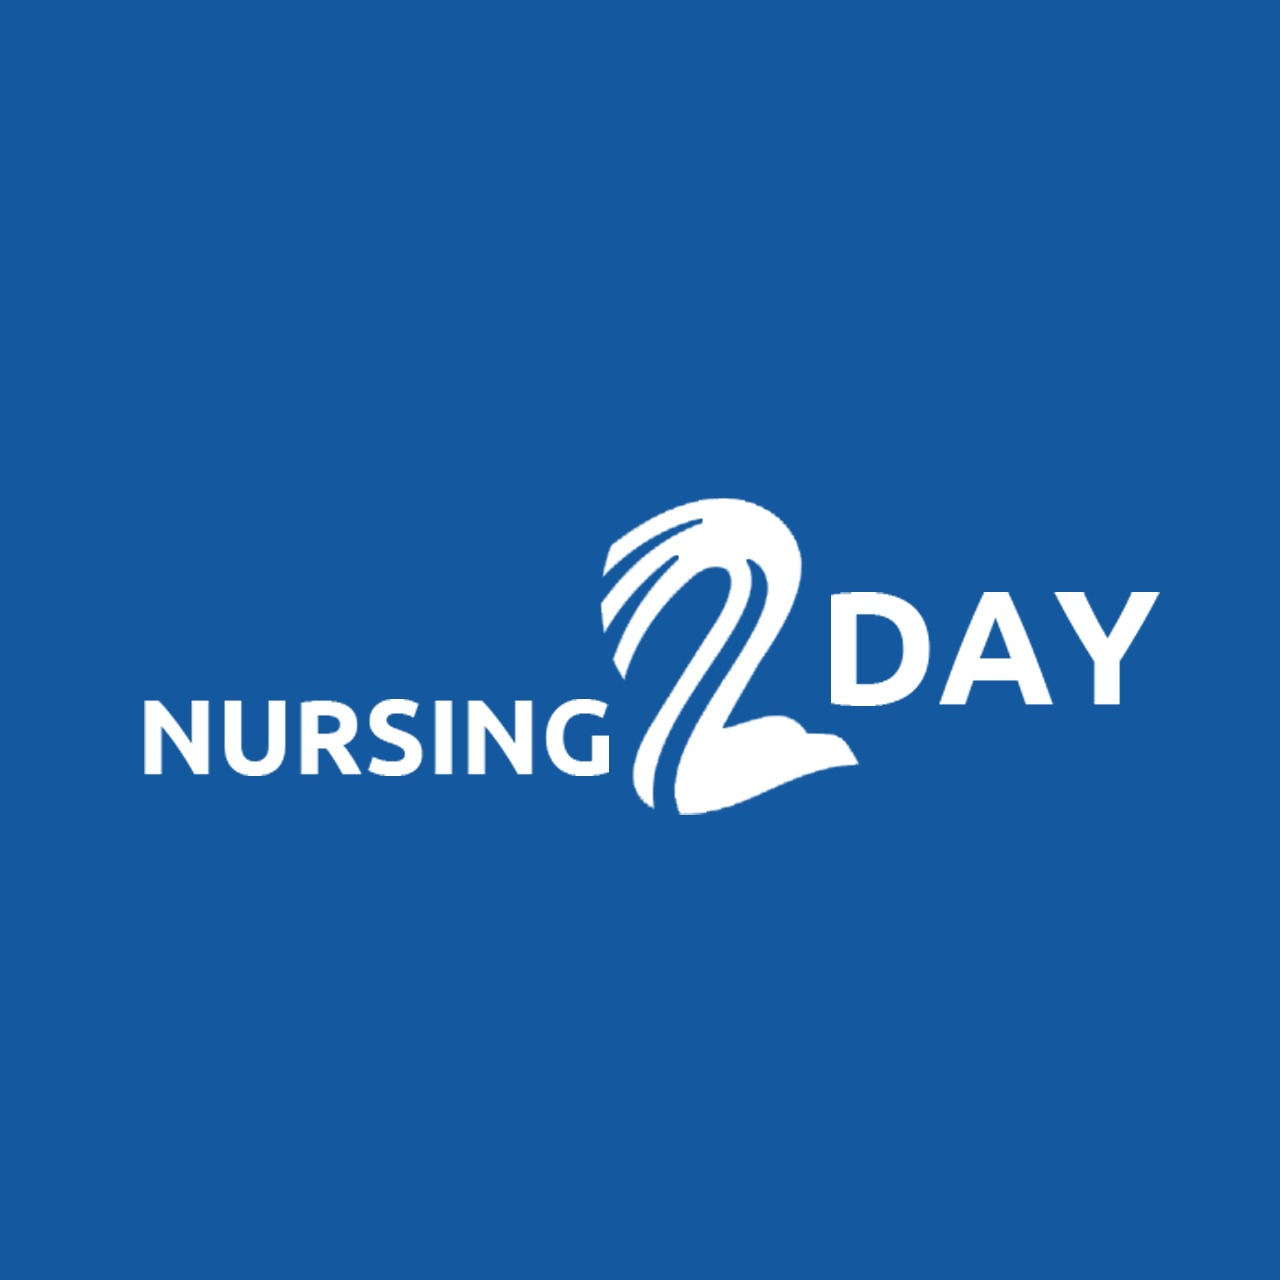 nursing2day website launch